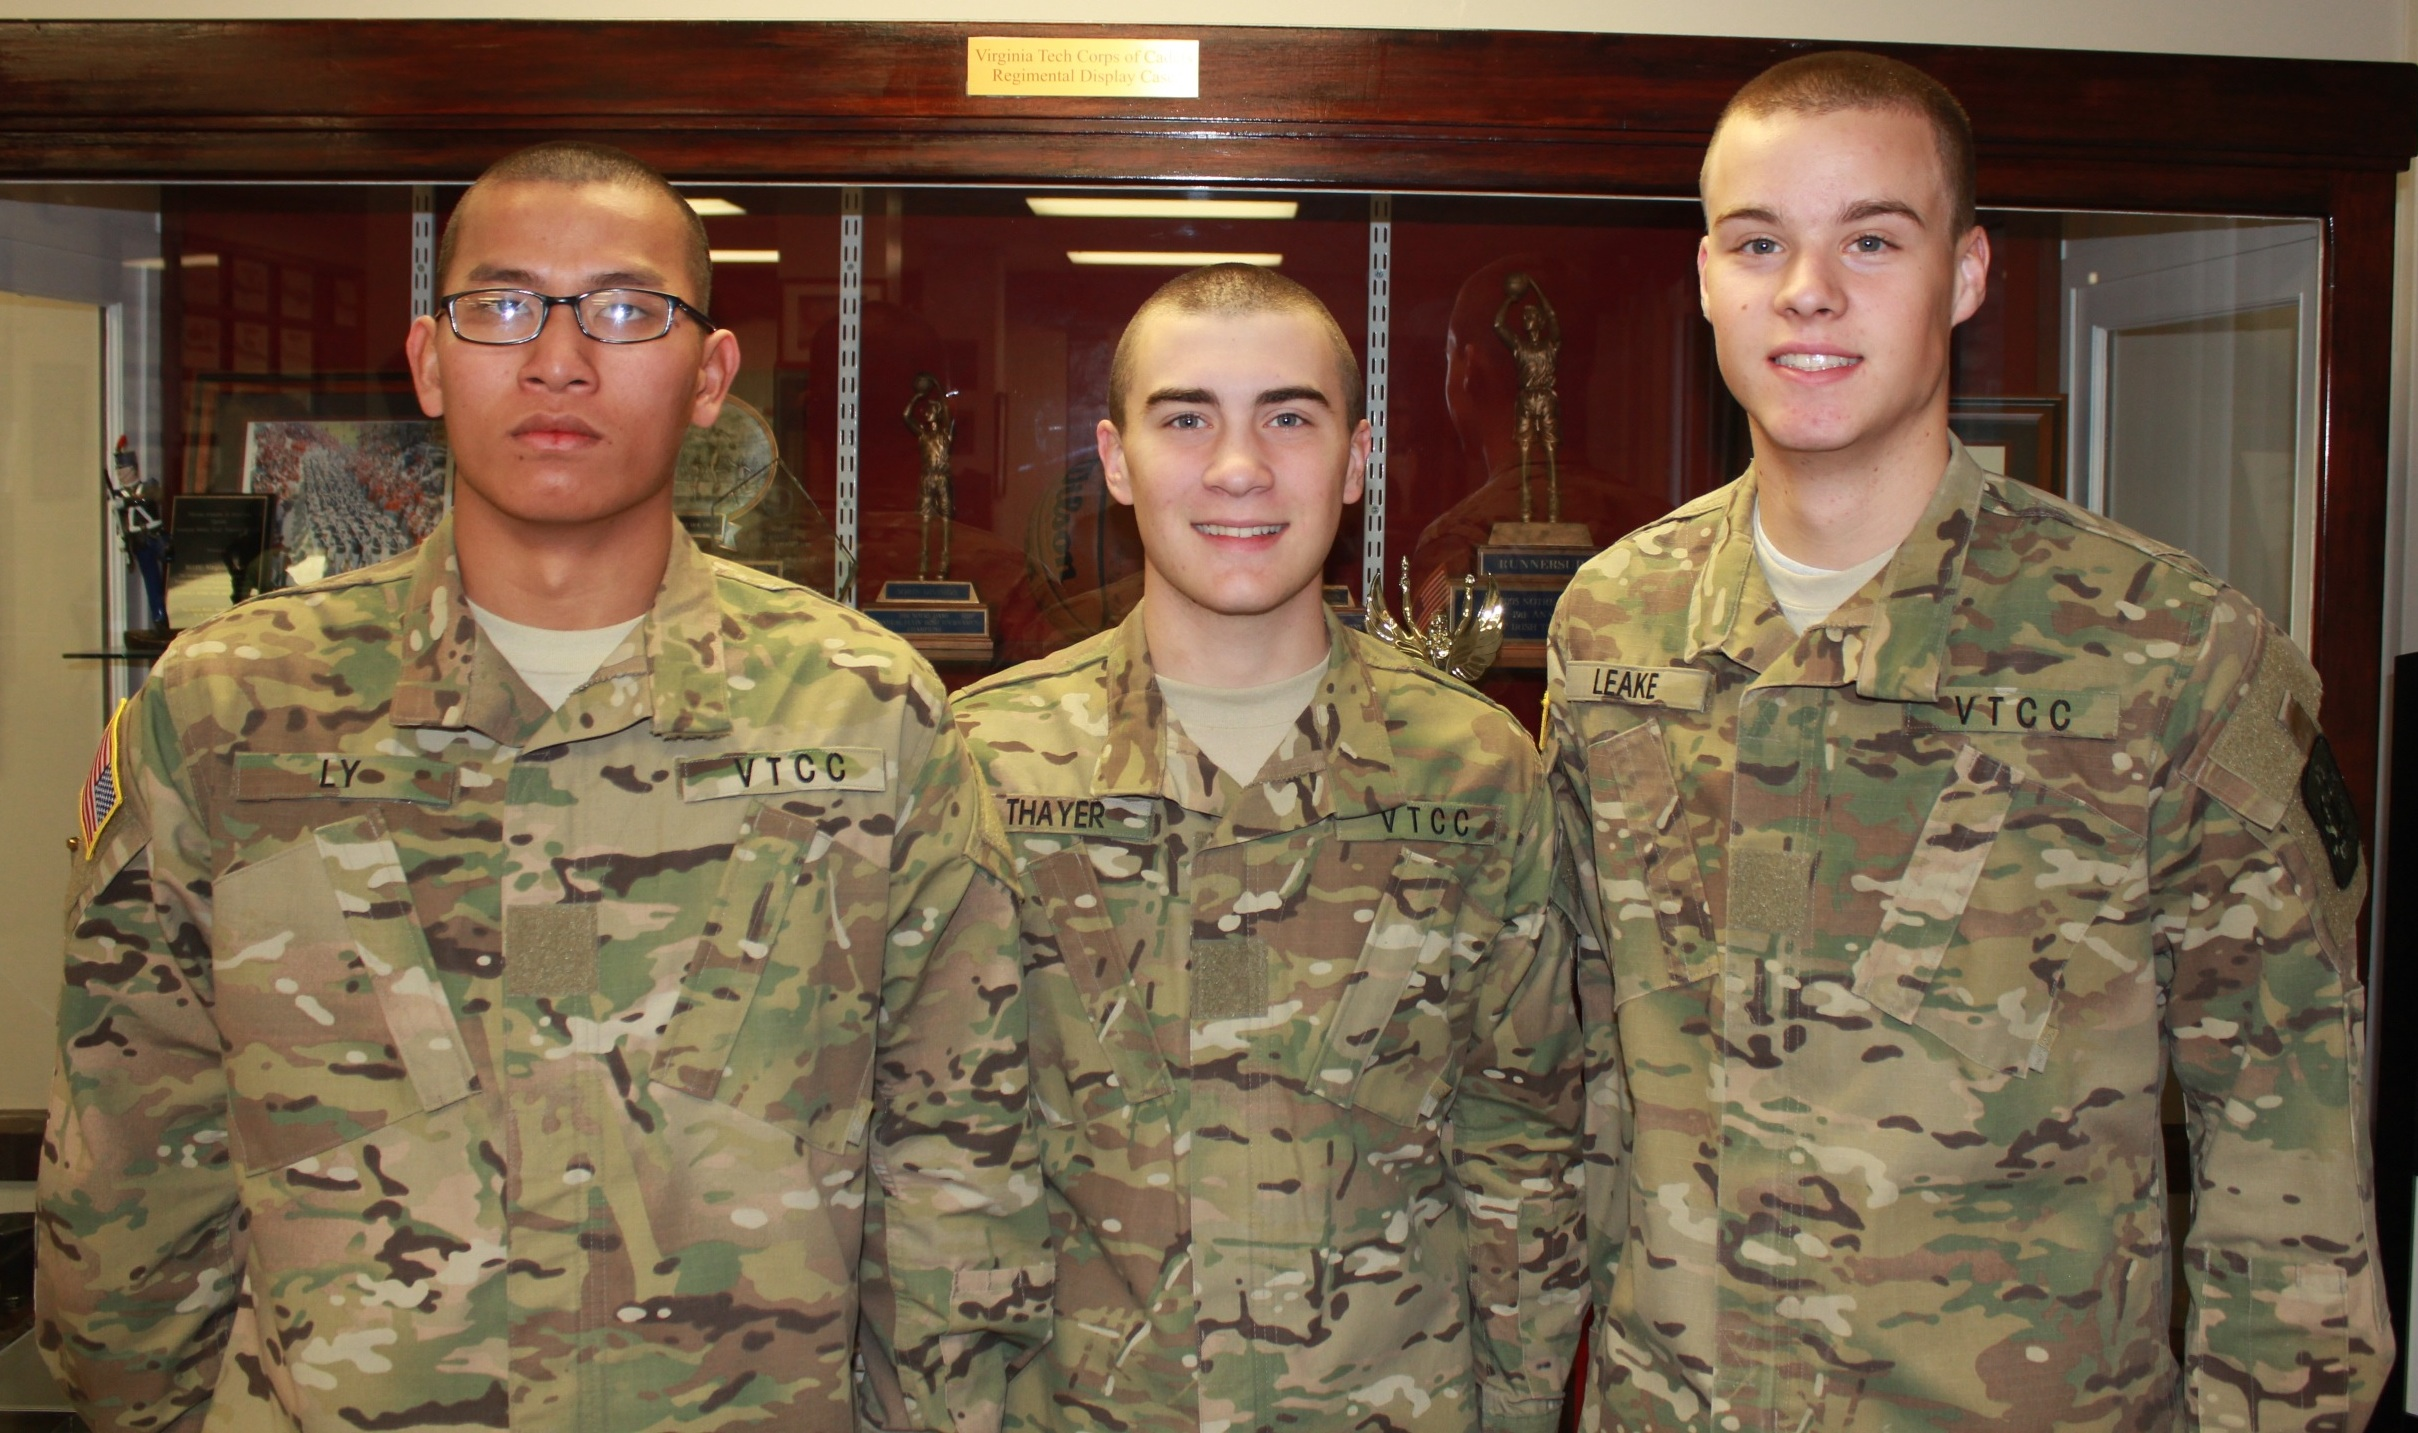 Cadets Tau Be Ly, Michael Thayer, and Austin Leake in Brodie Hall.